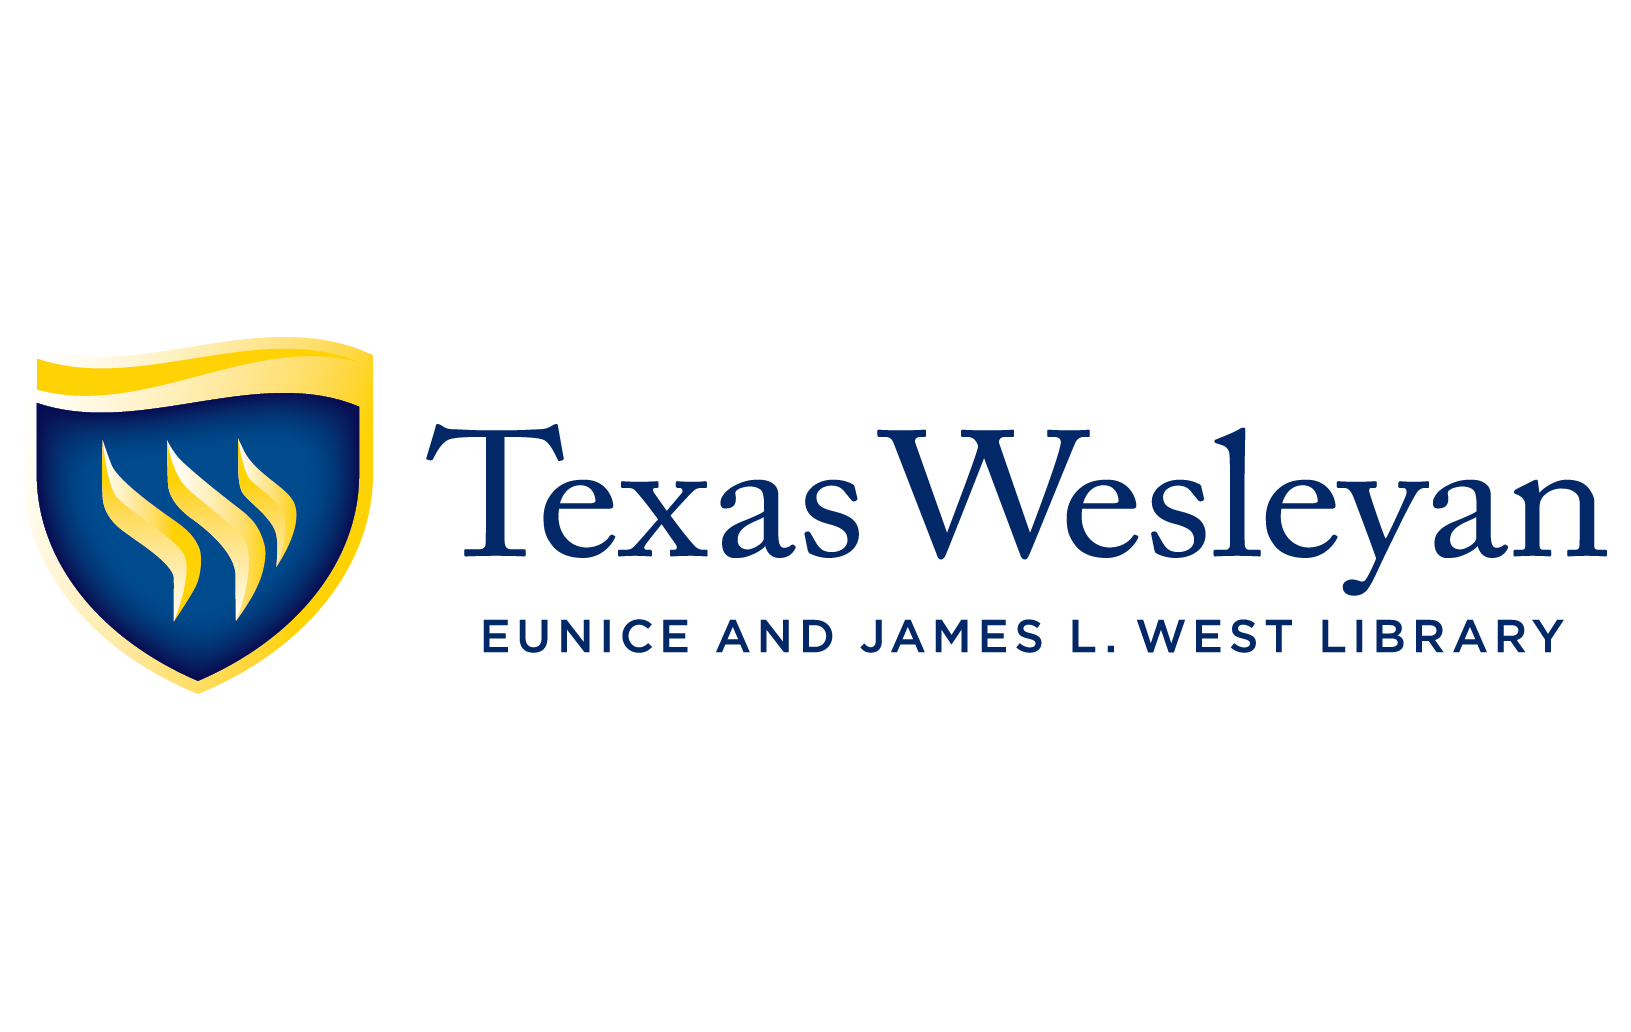 Texas Wesleyan University chooses Quartex to consolidate and strengthen its digital collections program